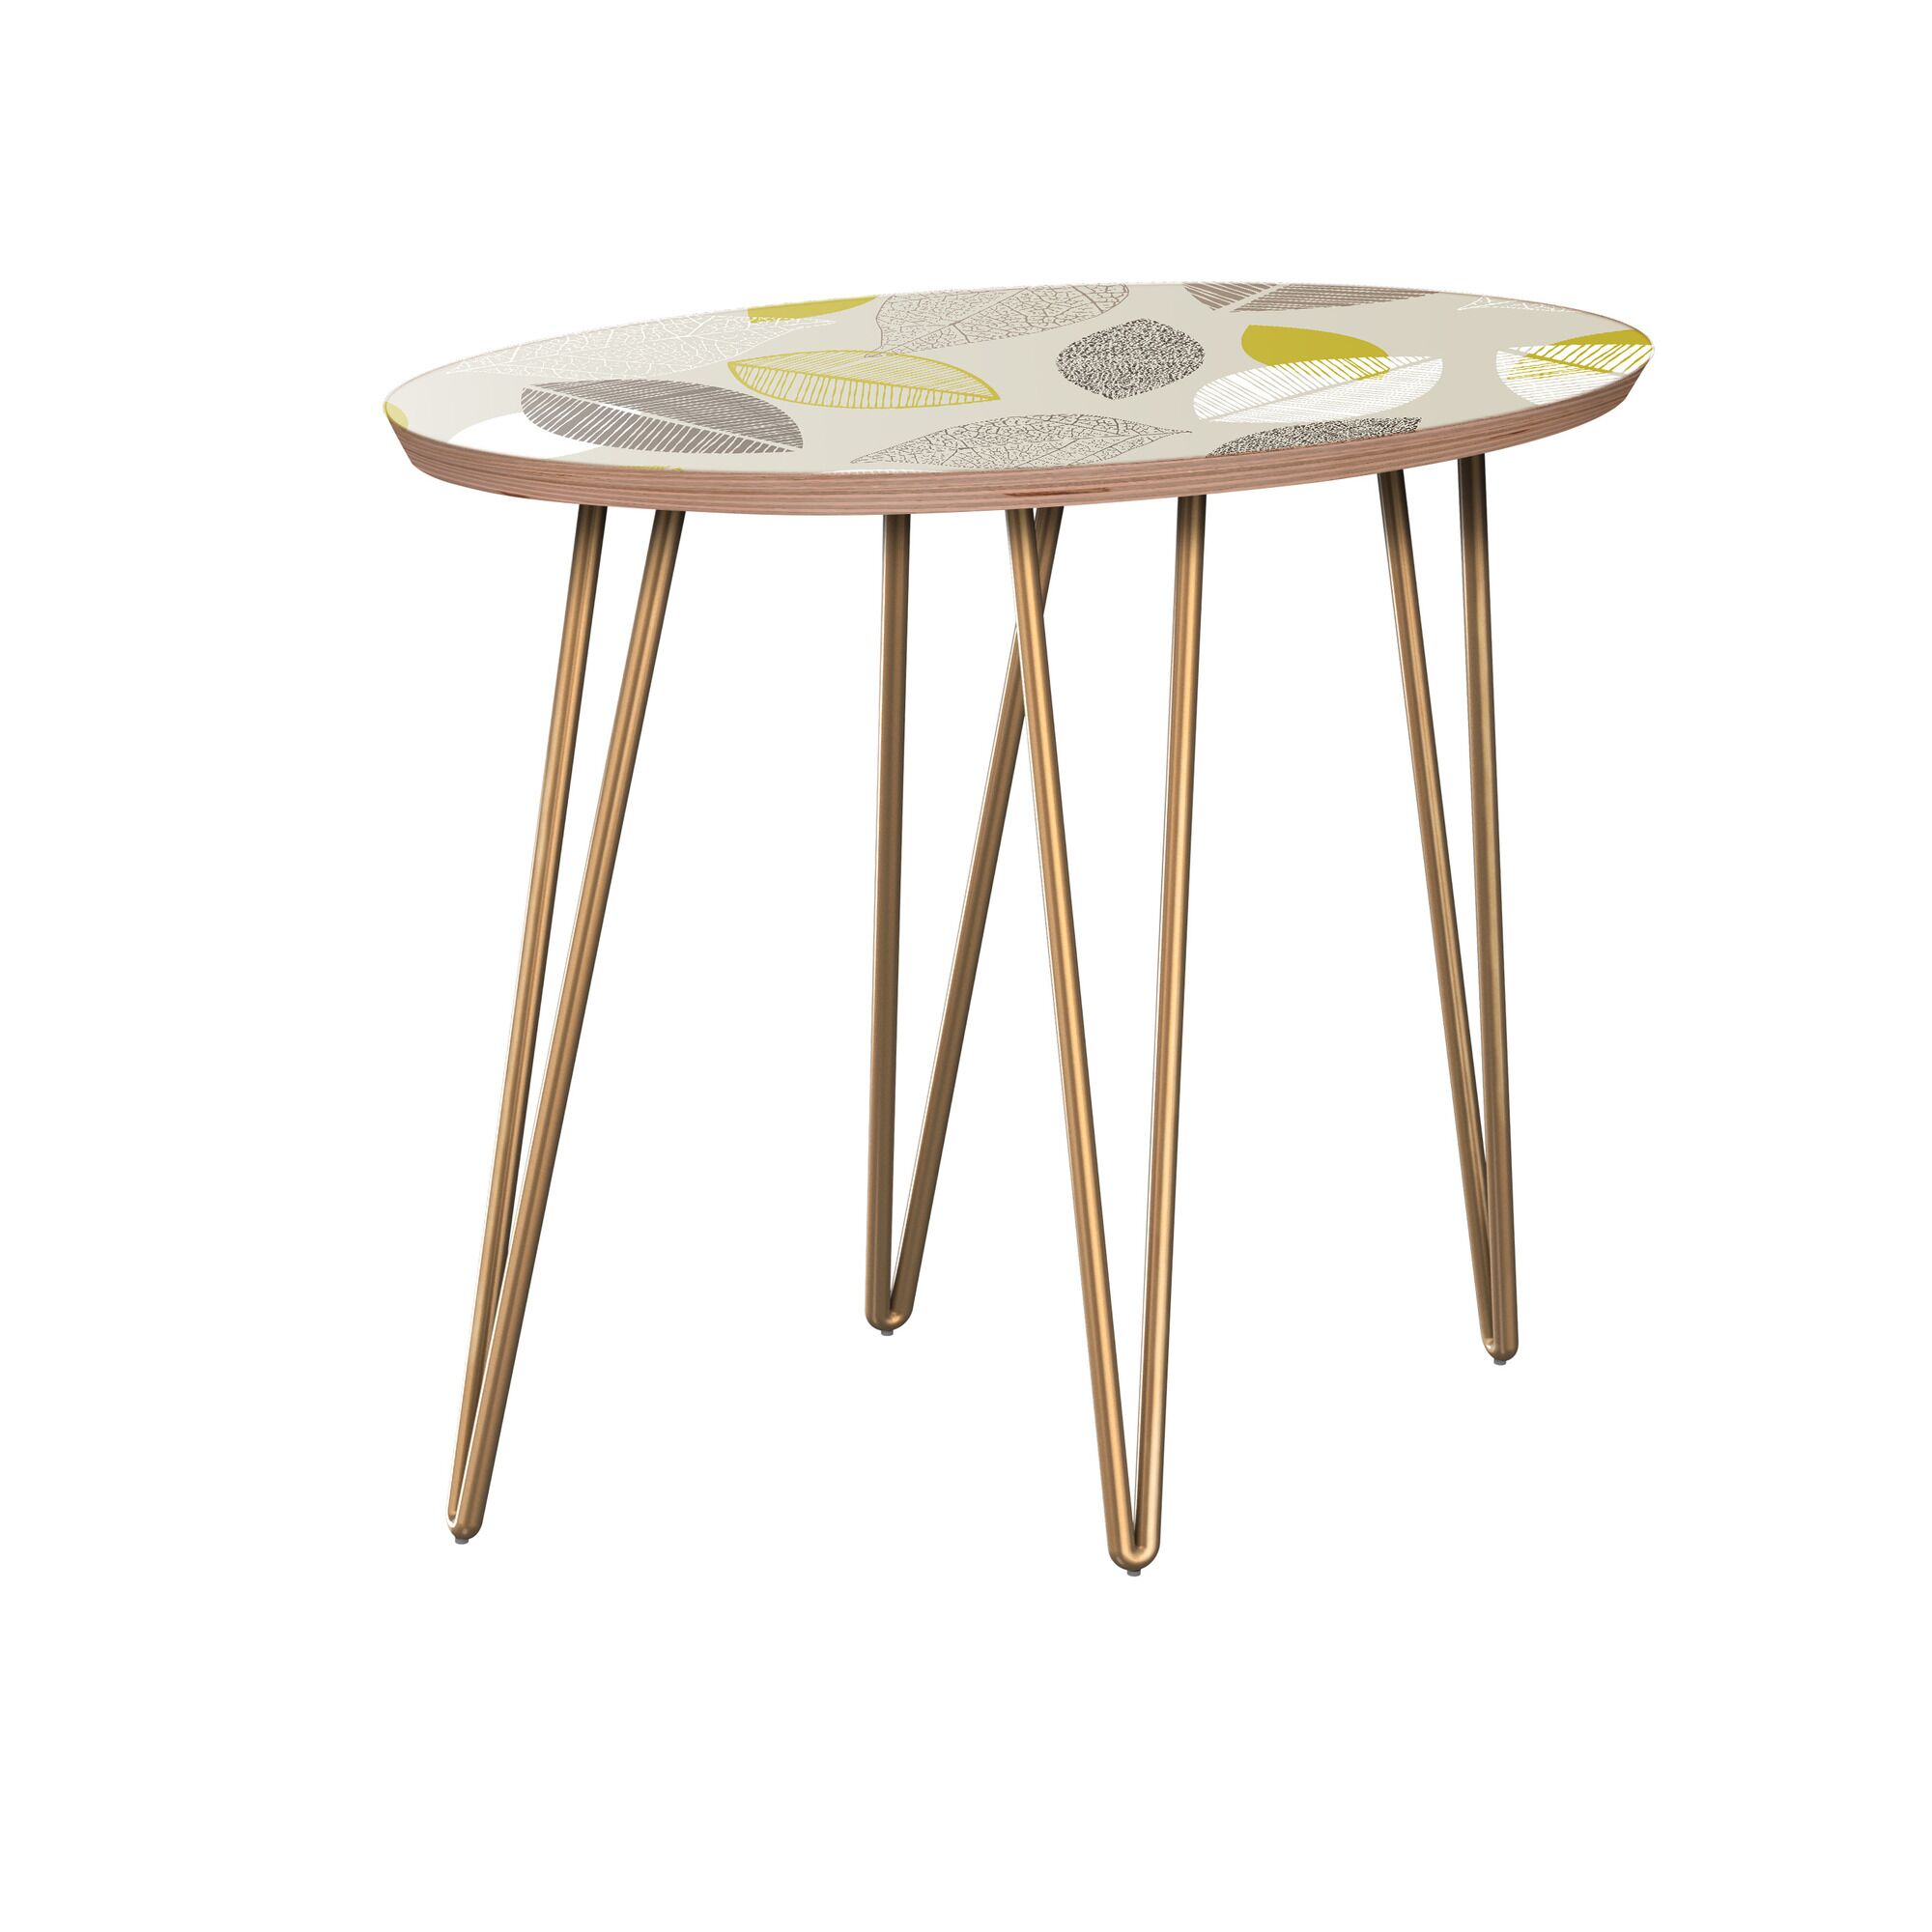 Krysten End Table Table Base Color: Brass, Table Top Boarder Color: Walnut, Table Top Color: Blue